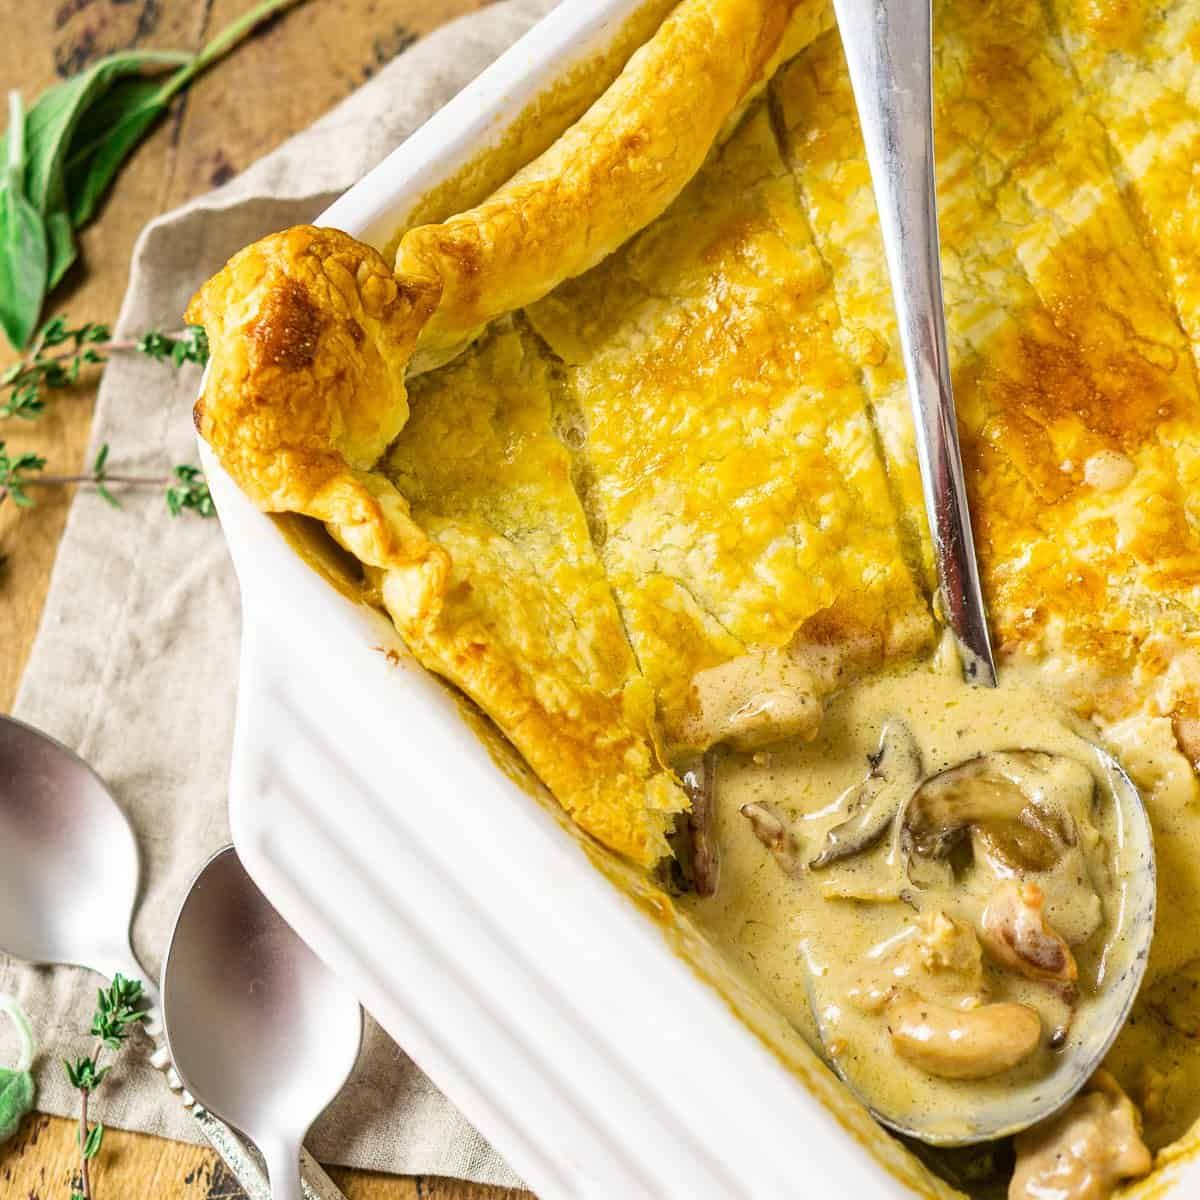 The chicken and mushroom pie with a stainless steel spoon scooping into the dish to show the creamy filling.